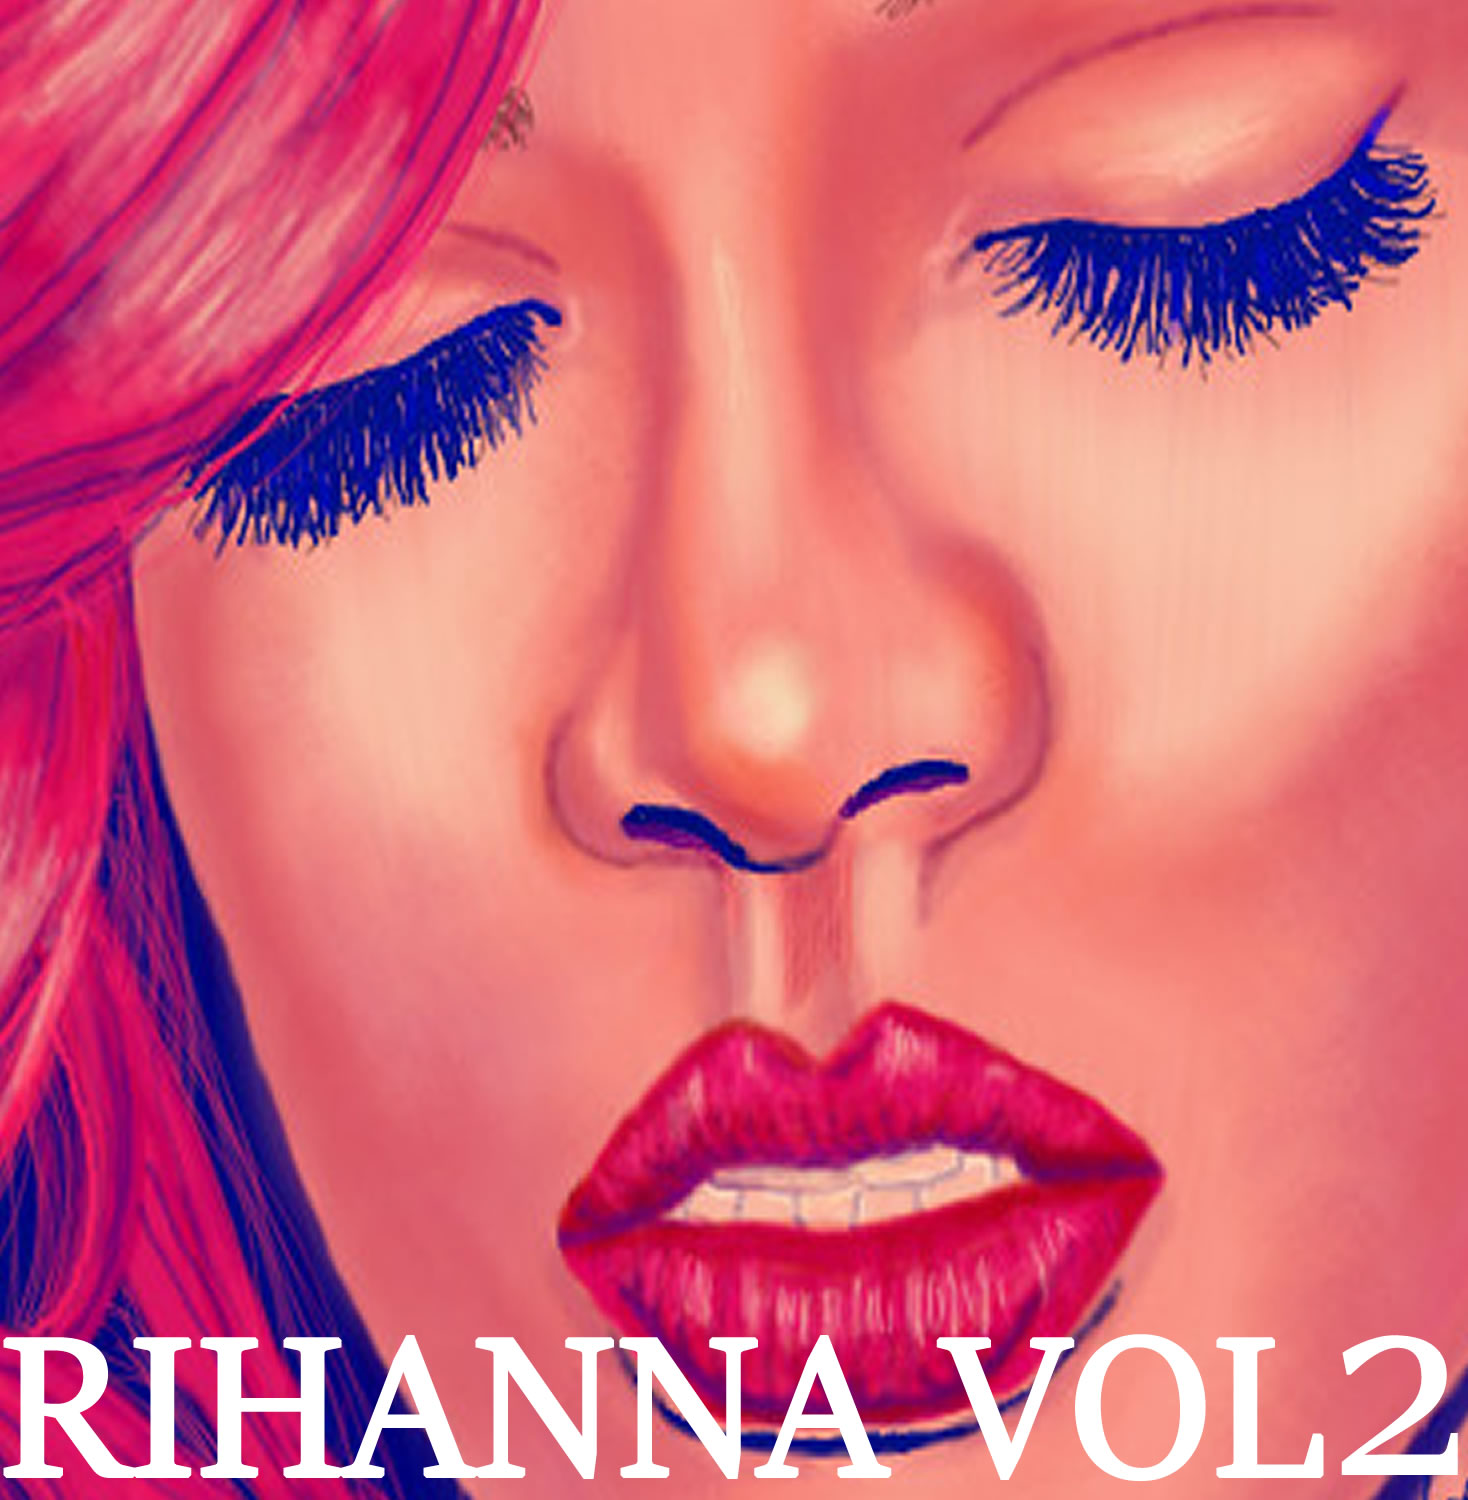 Vocal-Star Rihanna2 Hits